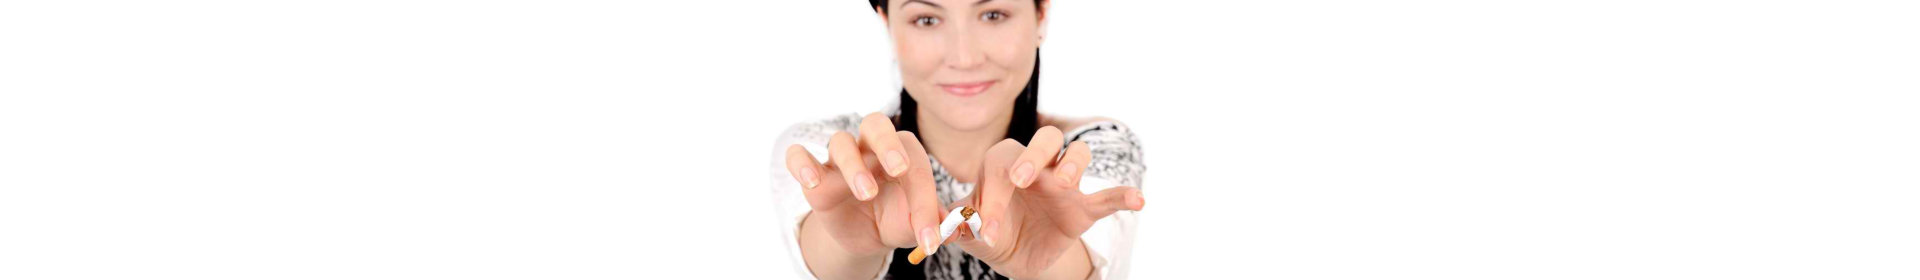 Young attractive woman quiting smoking isolated